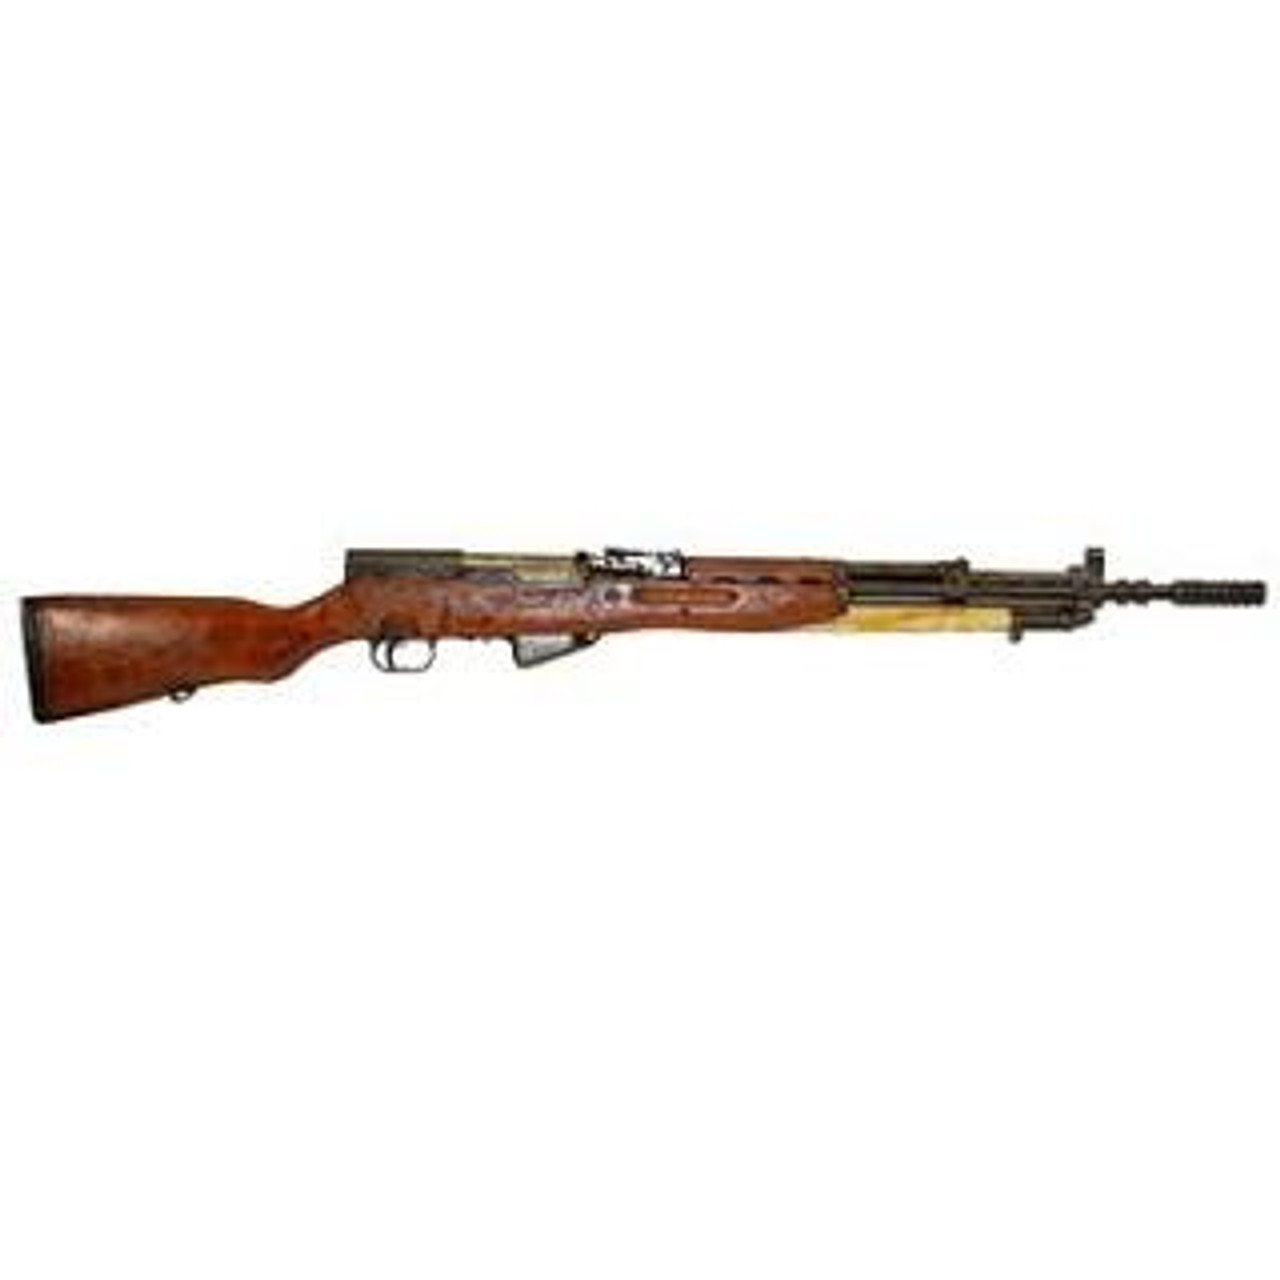 Yugo SKS 59/66 Fair Condition- CALIFORNIA LEGAL- 7.62x39